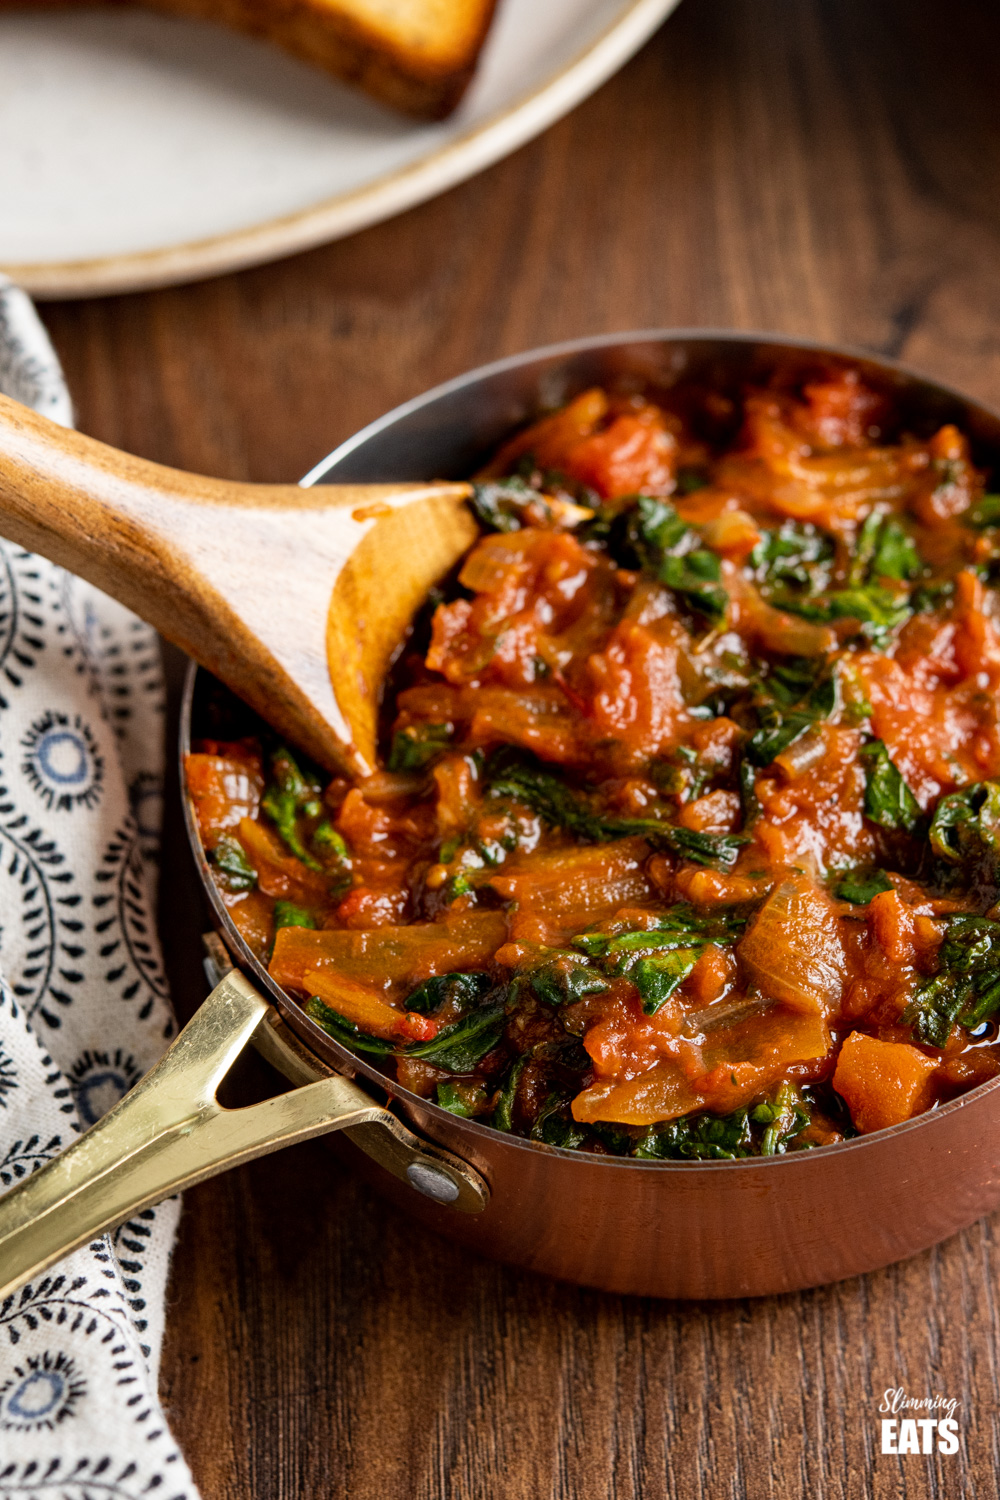 balsamic tomatoes with spinach in a copper mini saucepan with wooden spoon